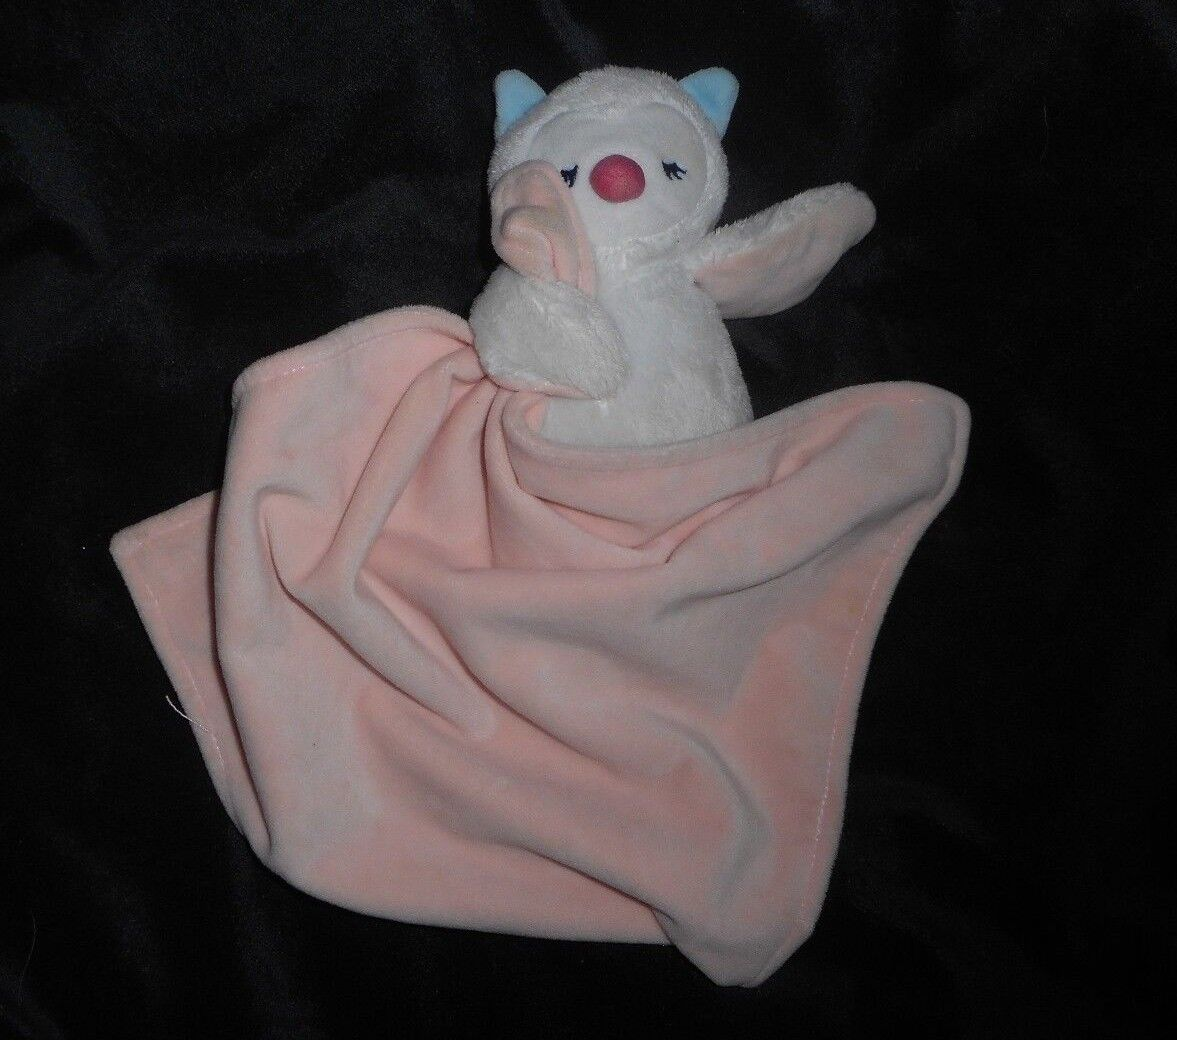 CARTER'S BABY WHITE OWL PINK PEACH SECURITY BLANKET RATTLE STUFFED ANIMAL PLUSH